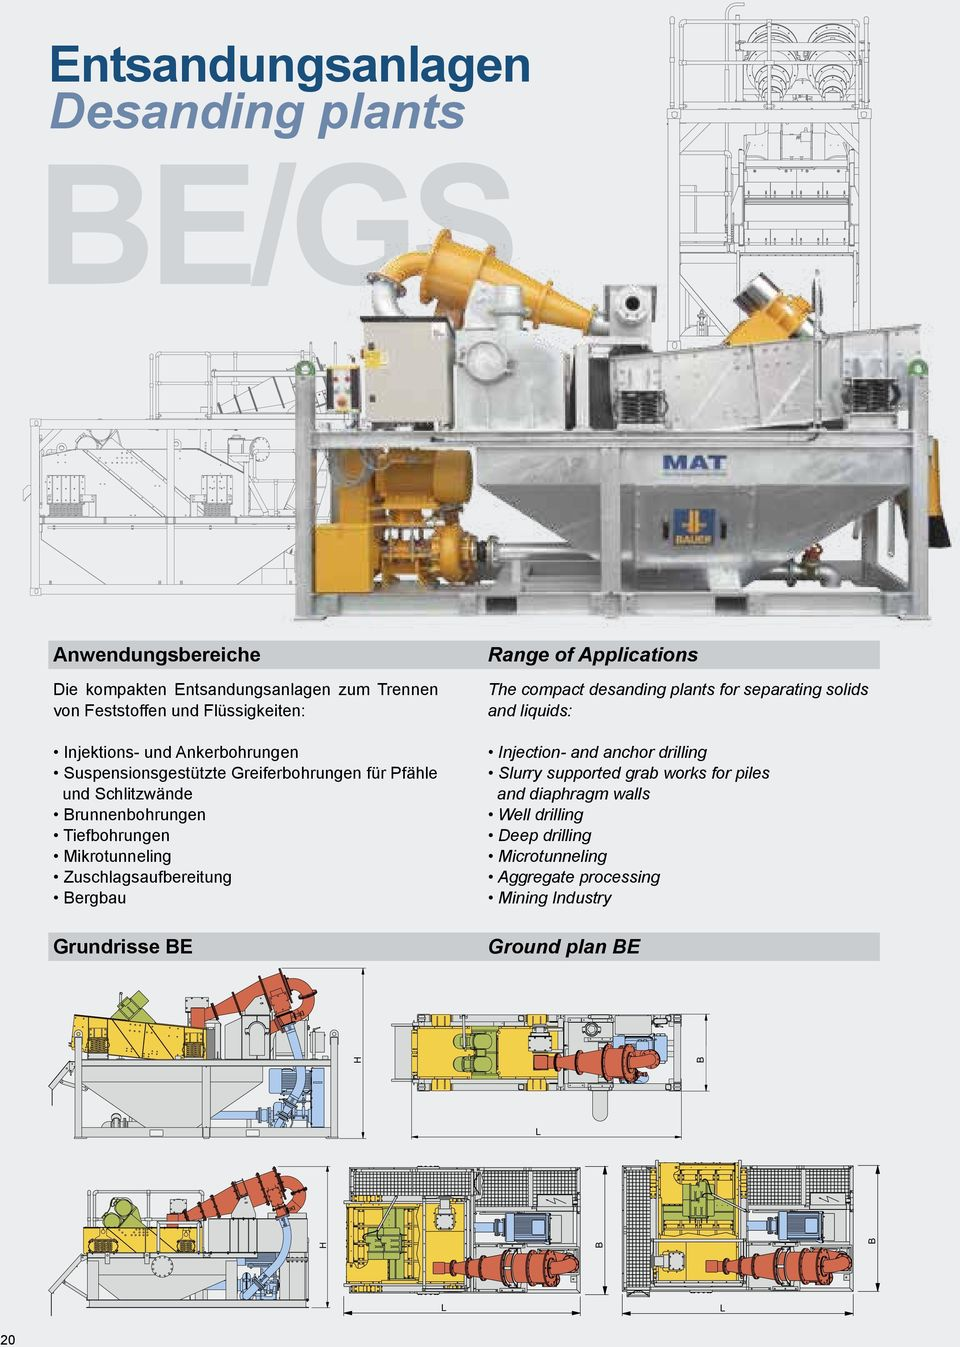 Bergbau Grundrisse BE Range of Applications The compact desanding plants for separating solids and liquids: Injection- and anchor drilling Slurry